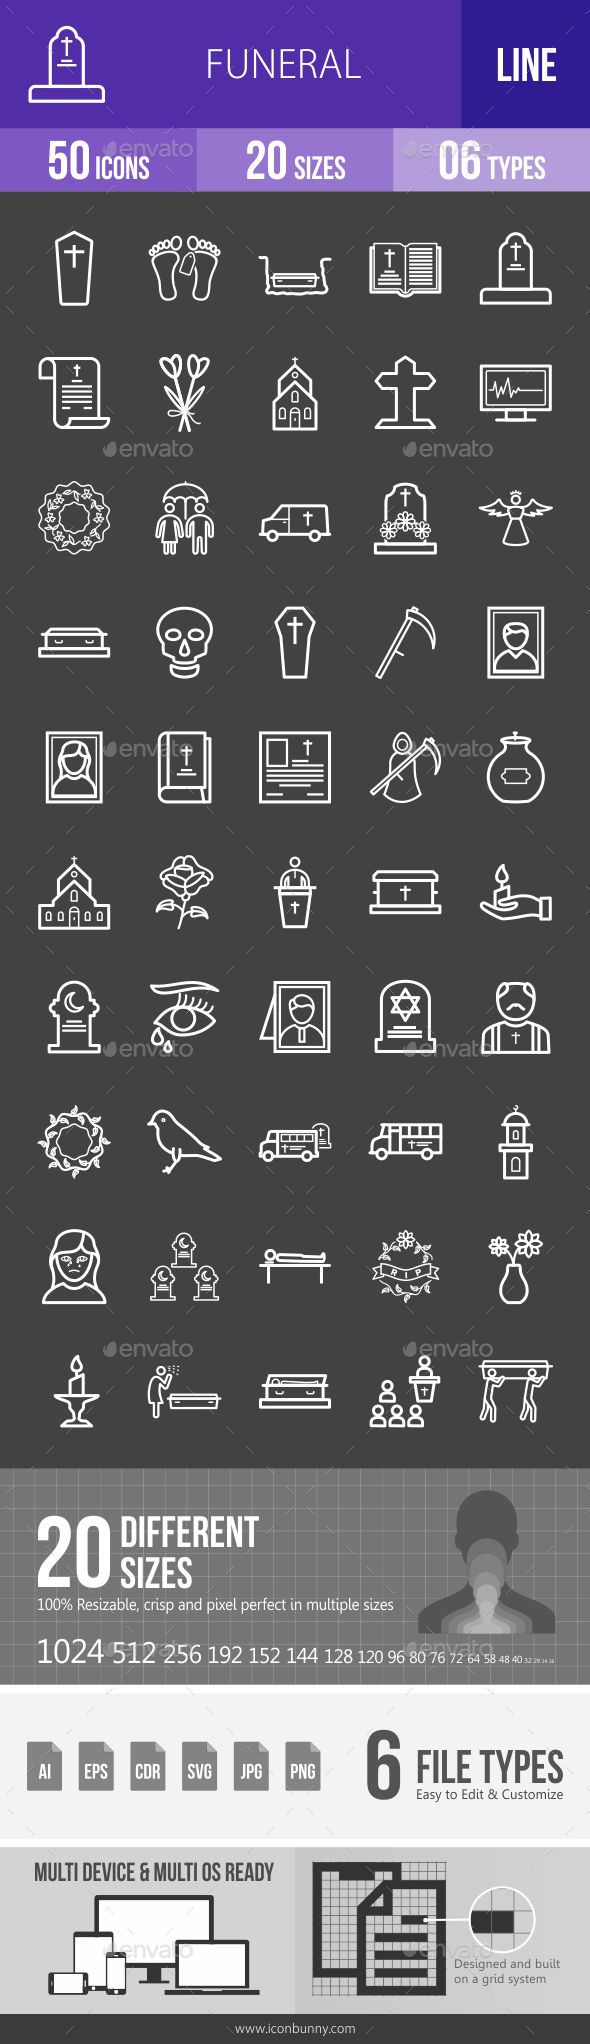 Funeral Line Inverted Icons Design Template - Icons Design Template Vector EPS, AI Illustrator. Download here: https://graphicriver.net/item/funeral-line-inverted-icons/19391434?ref=yinkira